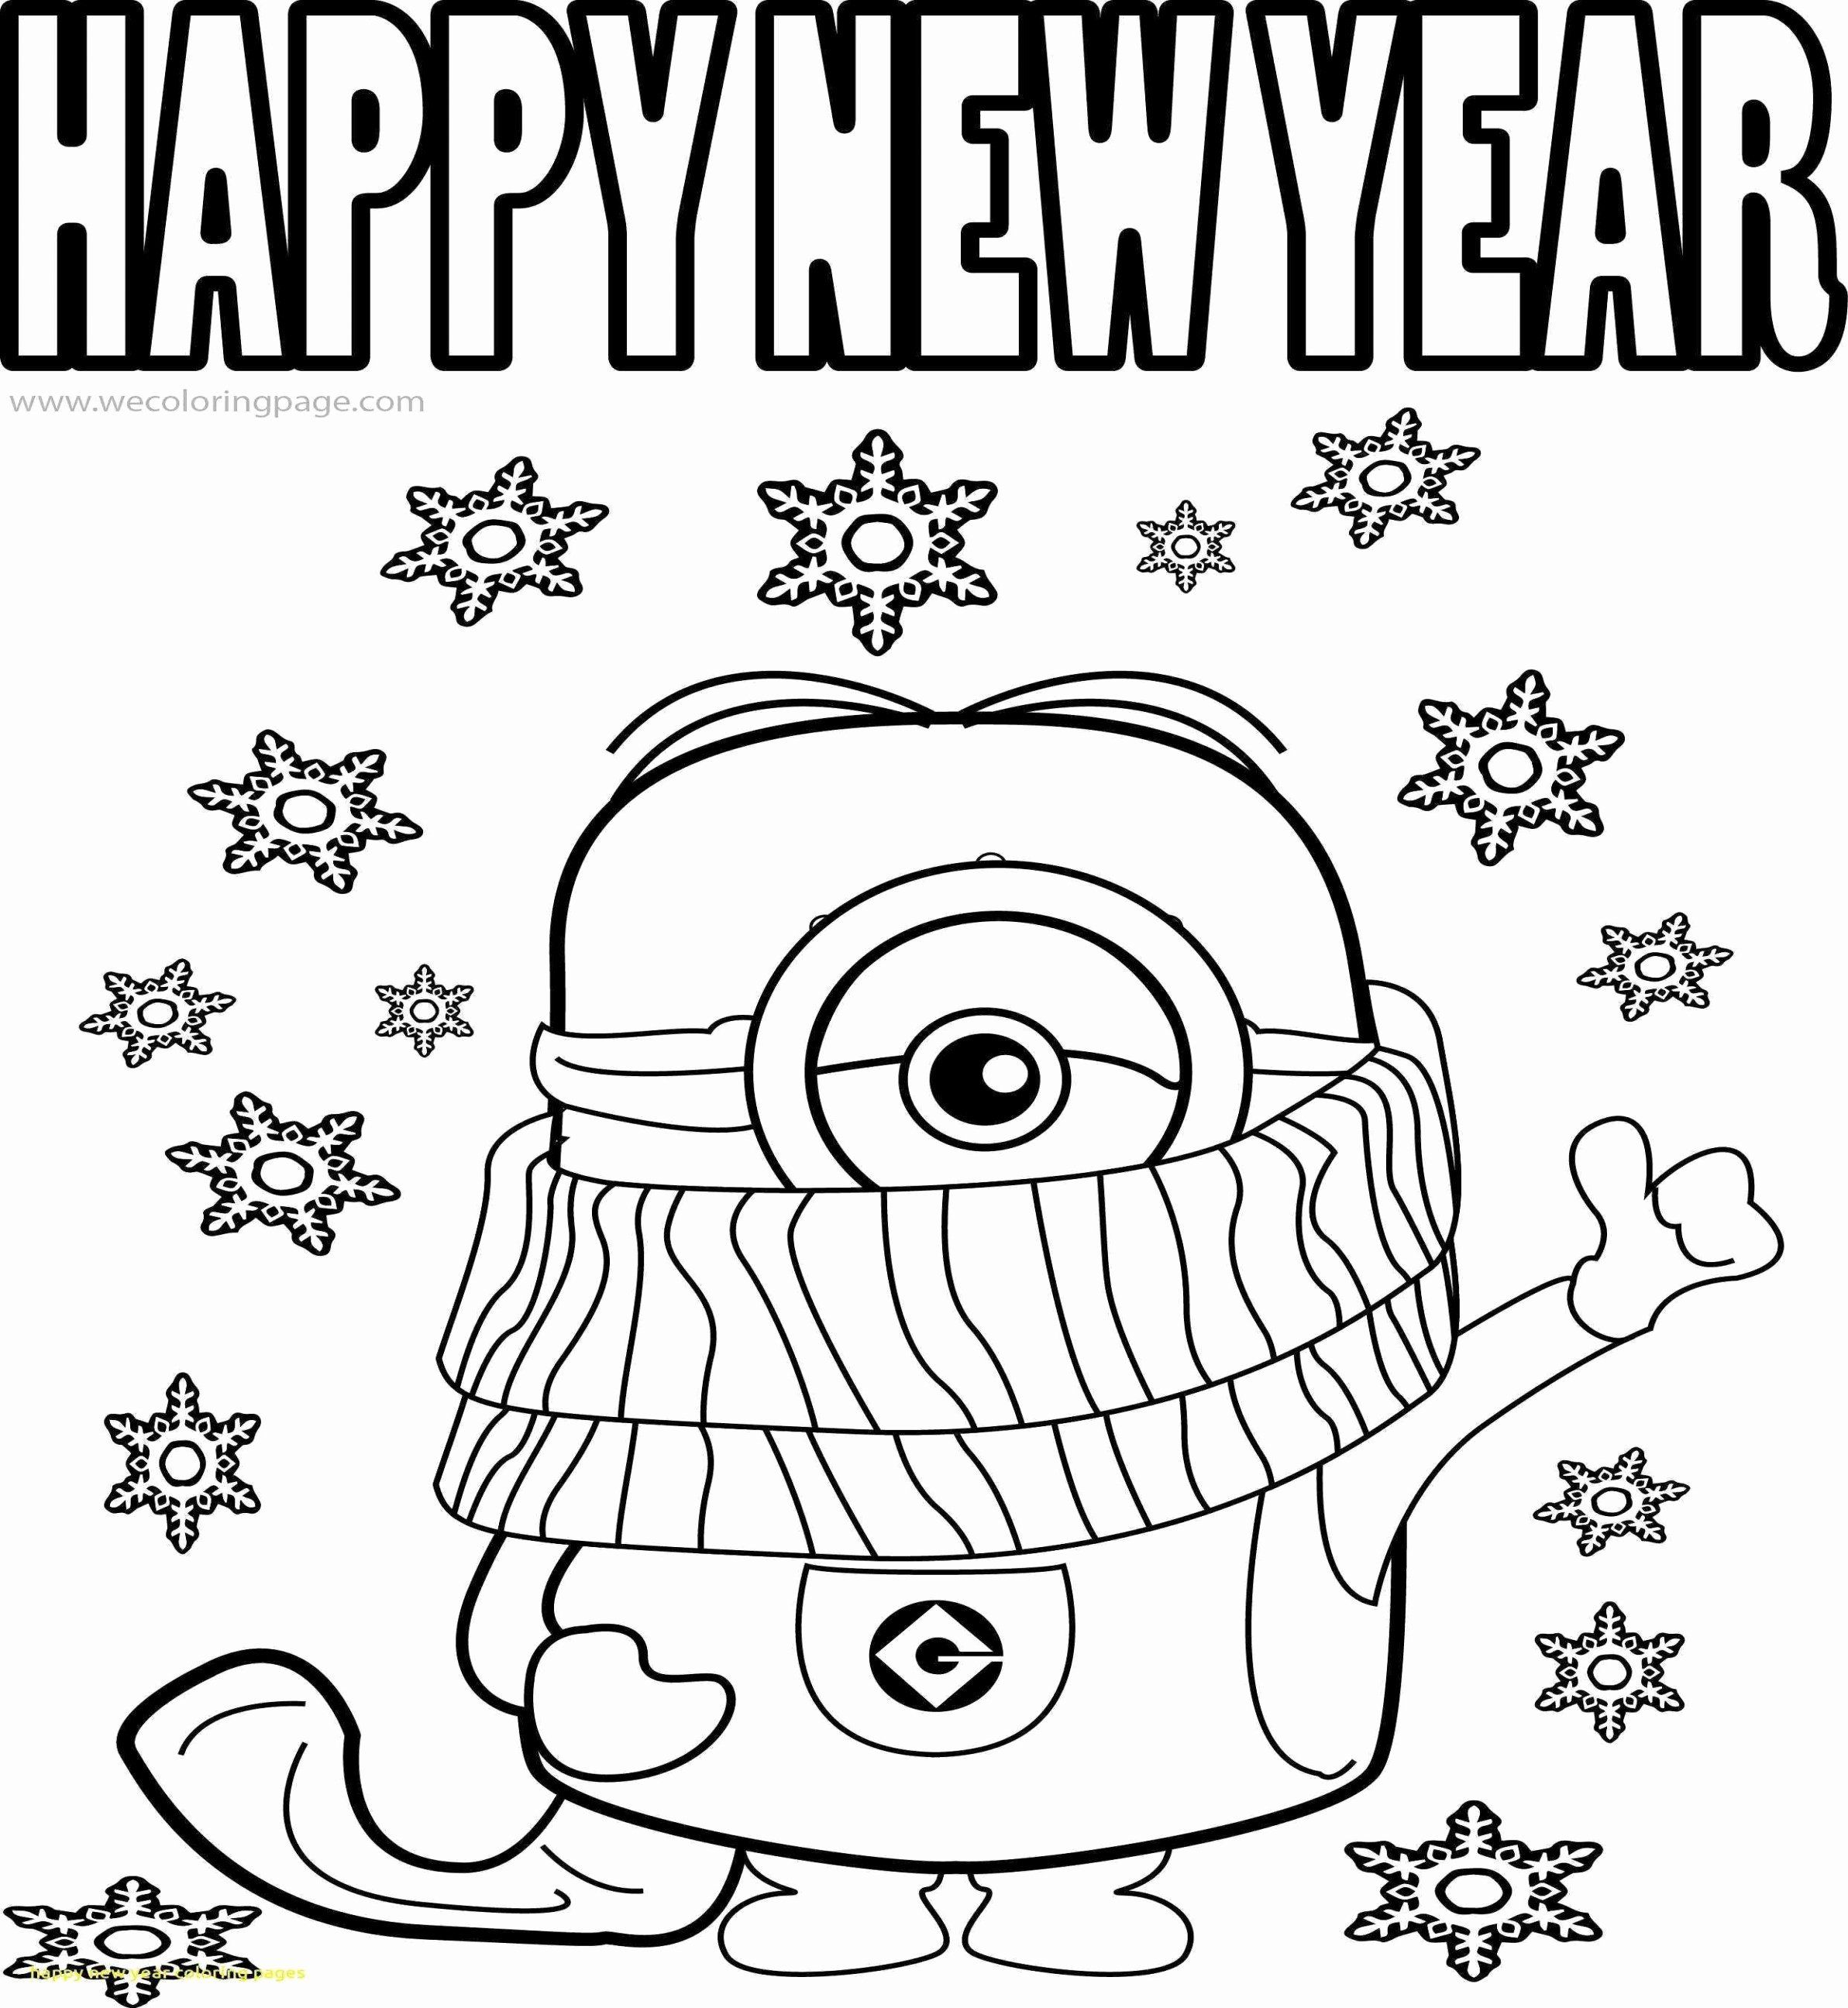 Happy New Year 2021 Coloring Pages New Year Coloring Pages Coloring Pages Cute Coloring Pages